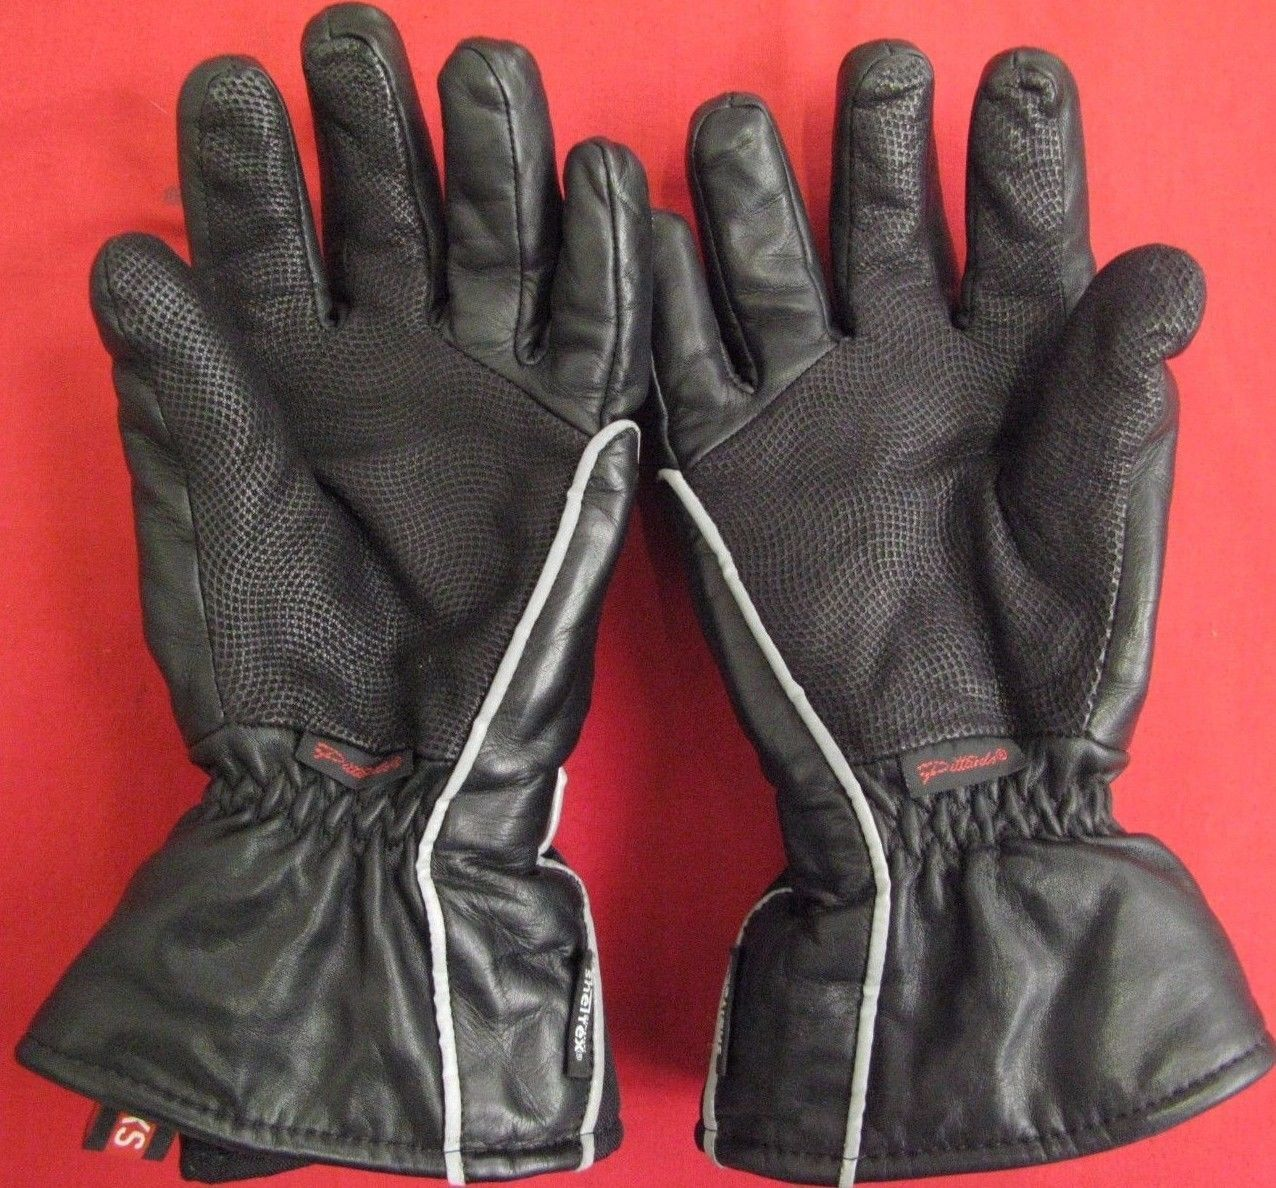 Pittards ladies leather gloves - Las Hein Gericke Pathan Stx Pittards Leather Waterproof Motorcycle Gloves Xs